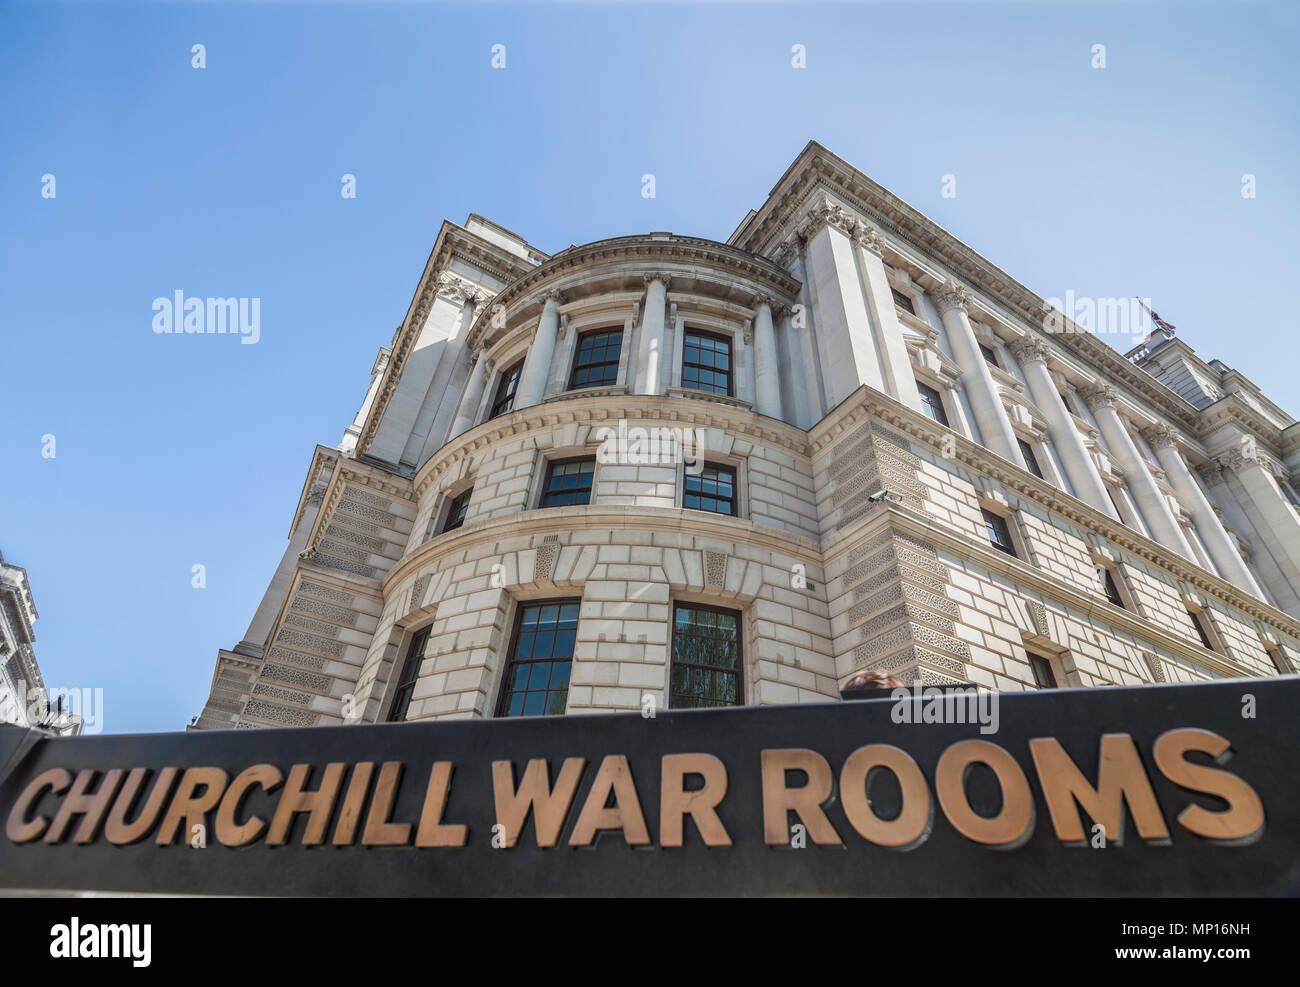 Imperial War Museum Churchill War Rooms, Westminster in London - Stock Image